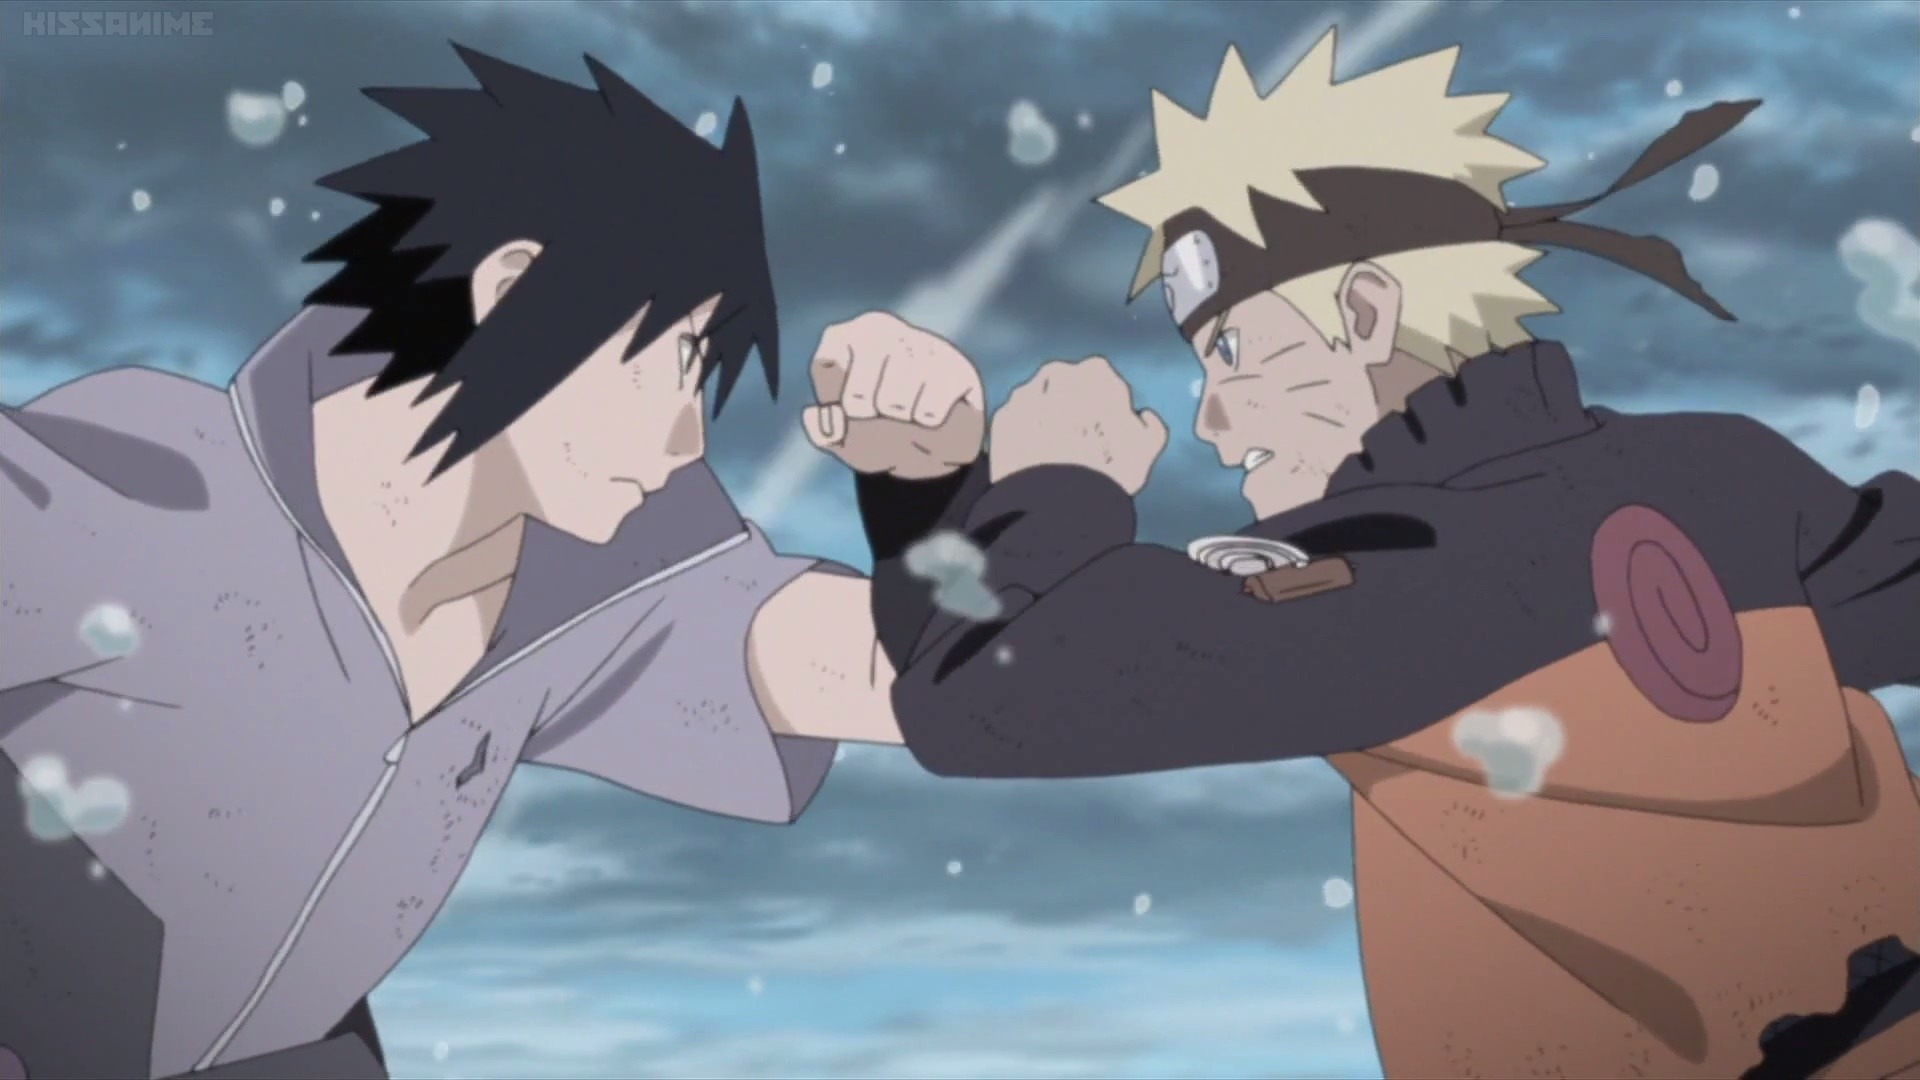 Naruto vs Sasuke Wallpaper (57+ images)